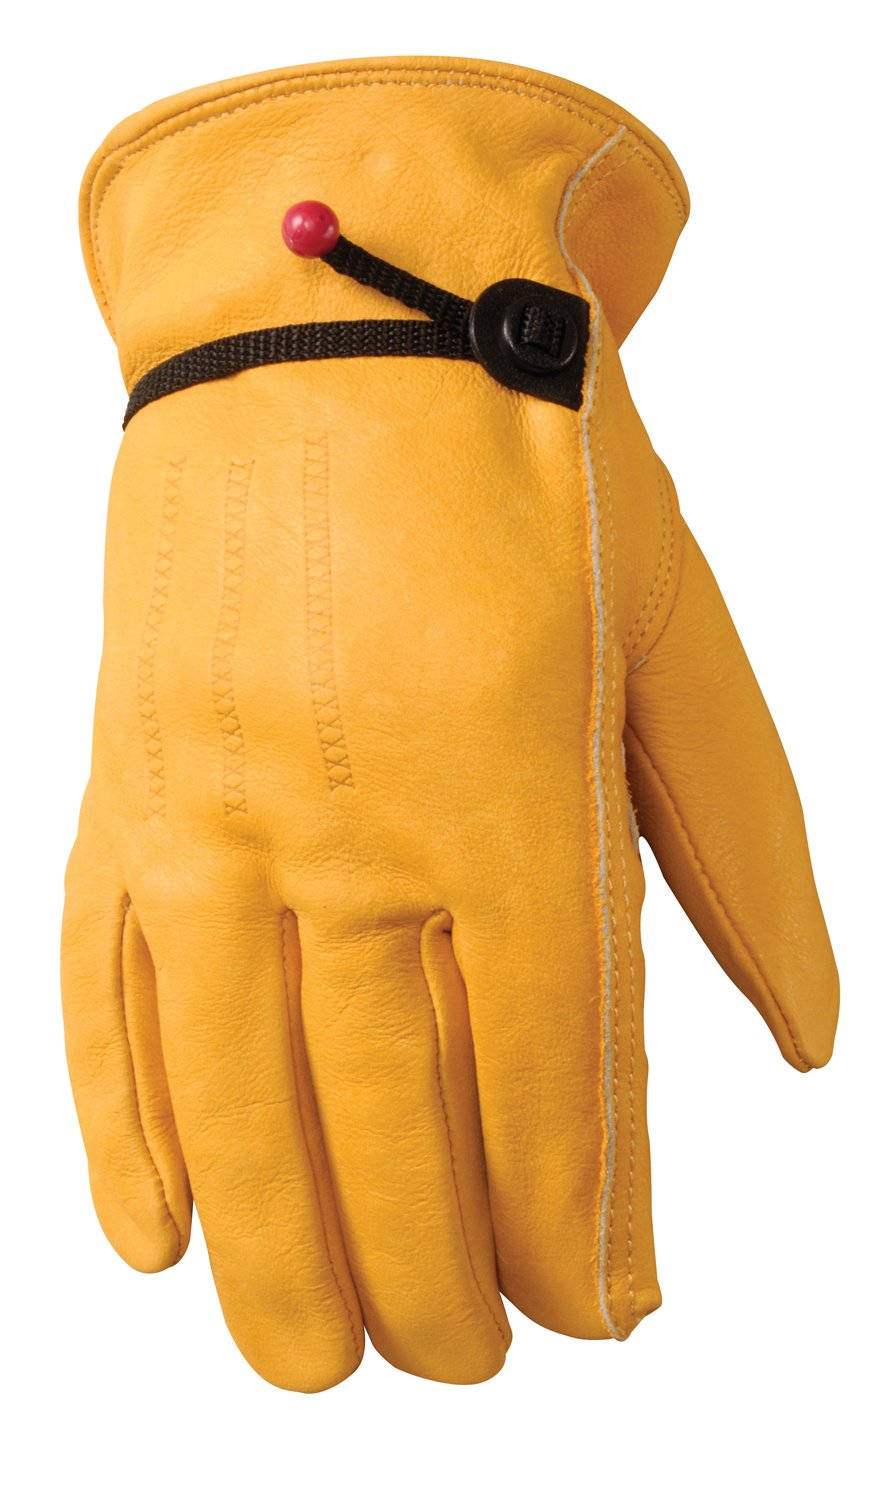 Leather Work Gloves with Wrist Closure, DIY, Yardwork, Construction, Motorcycle, Small (Wells Lamont 1132S)